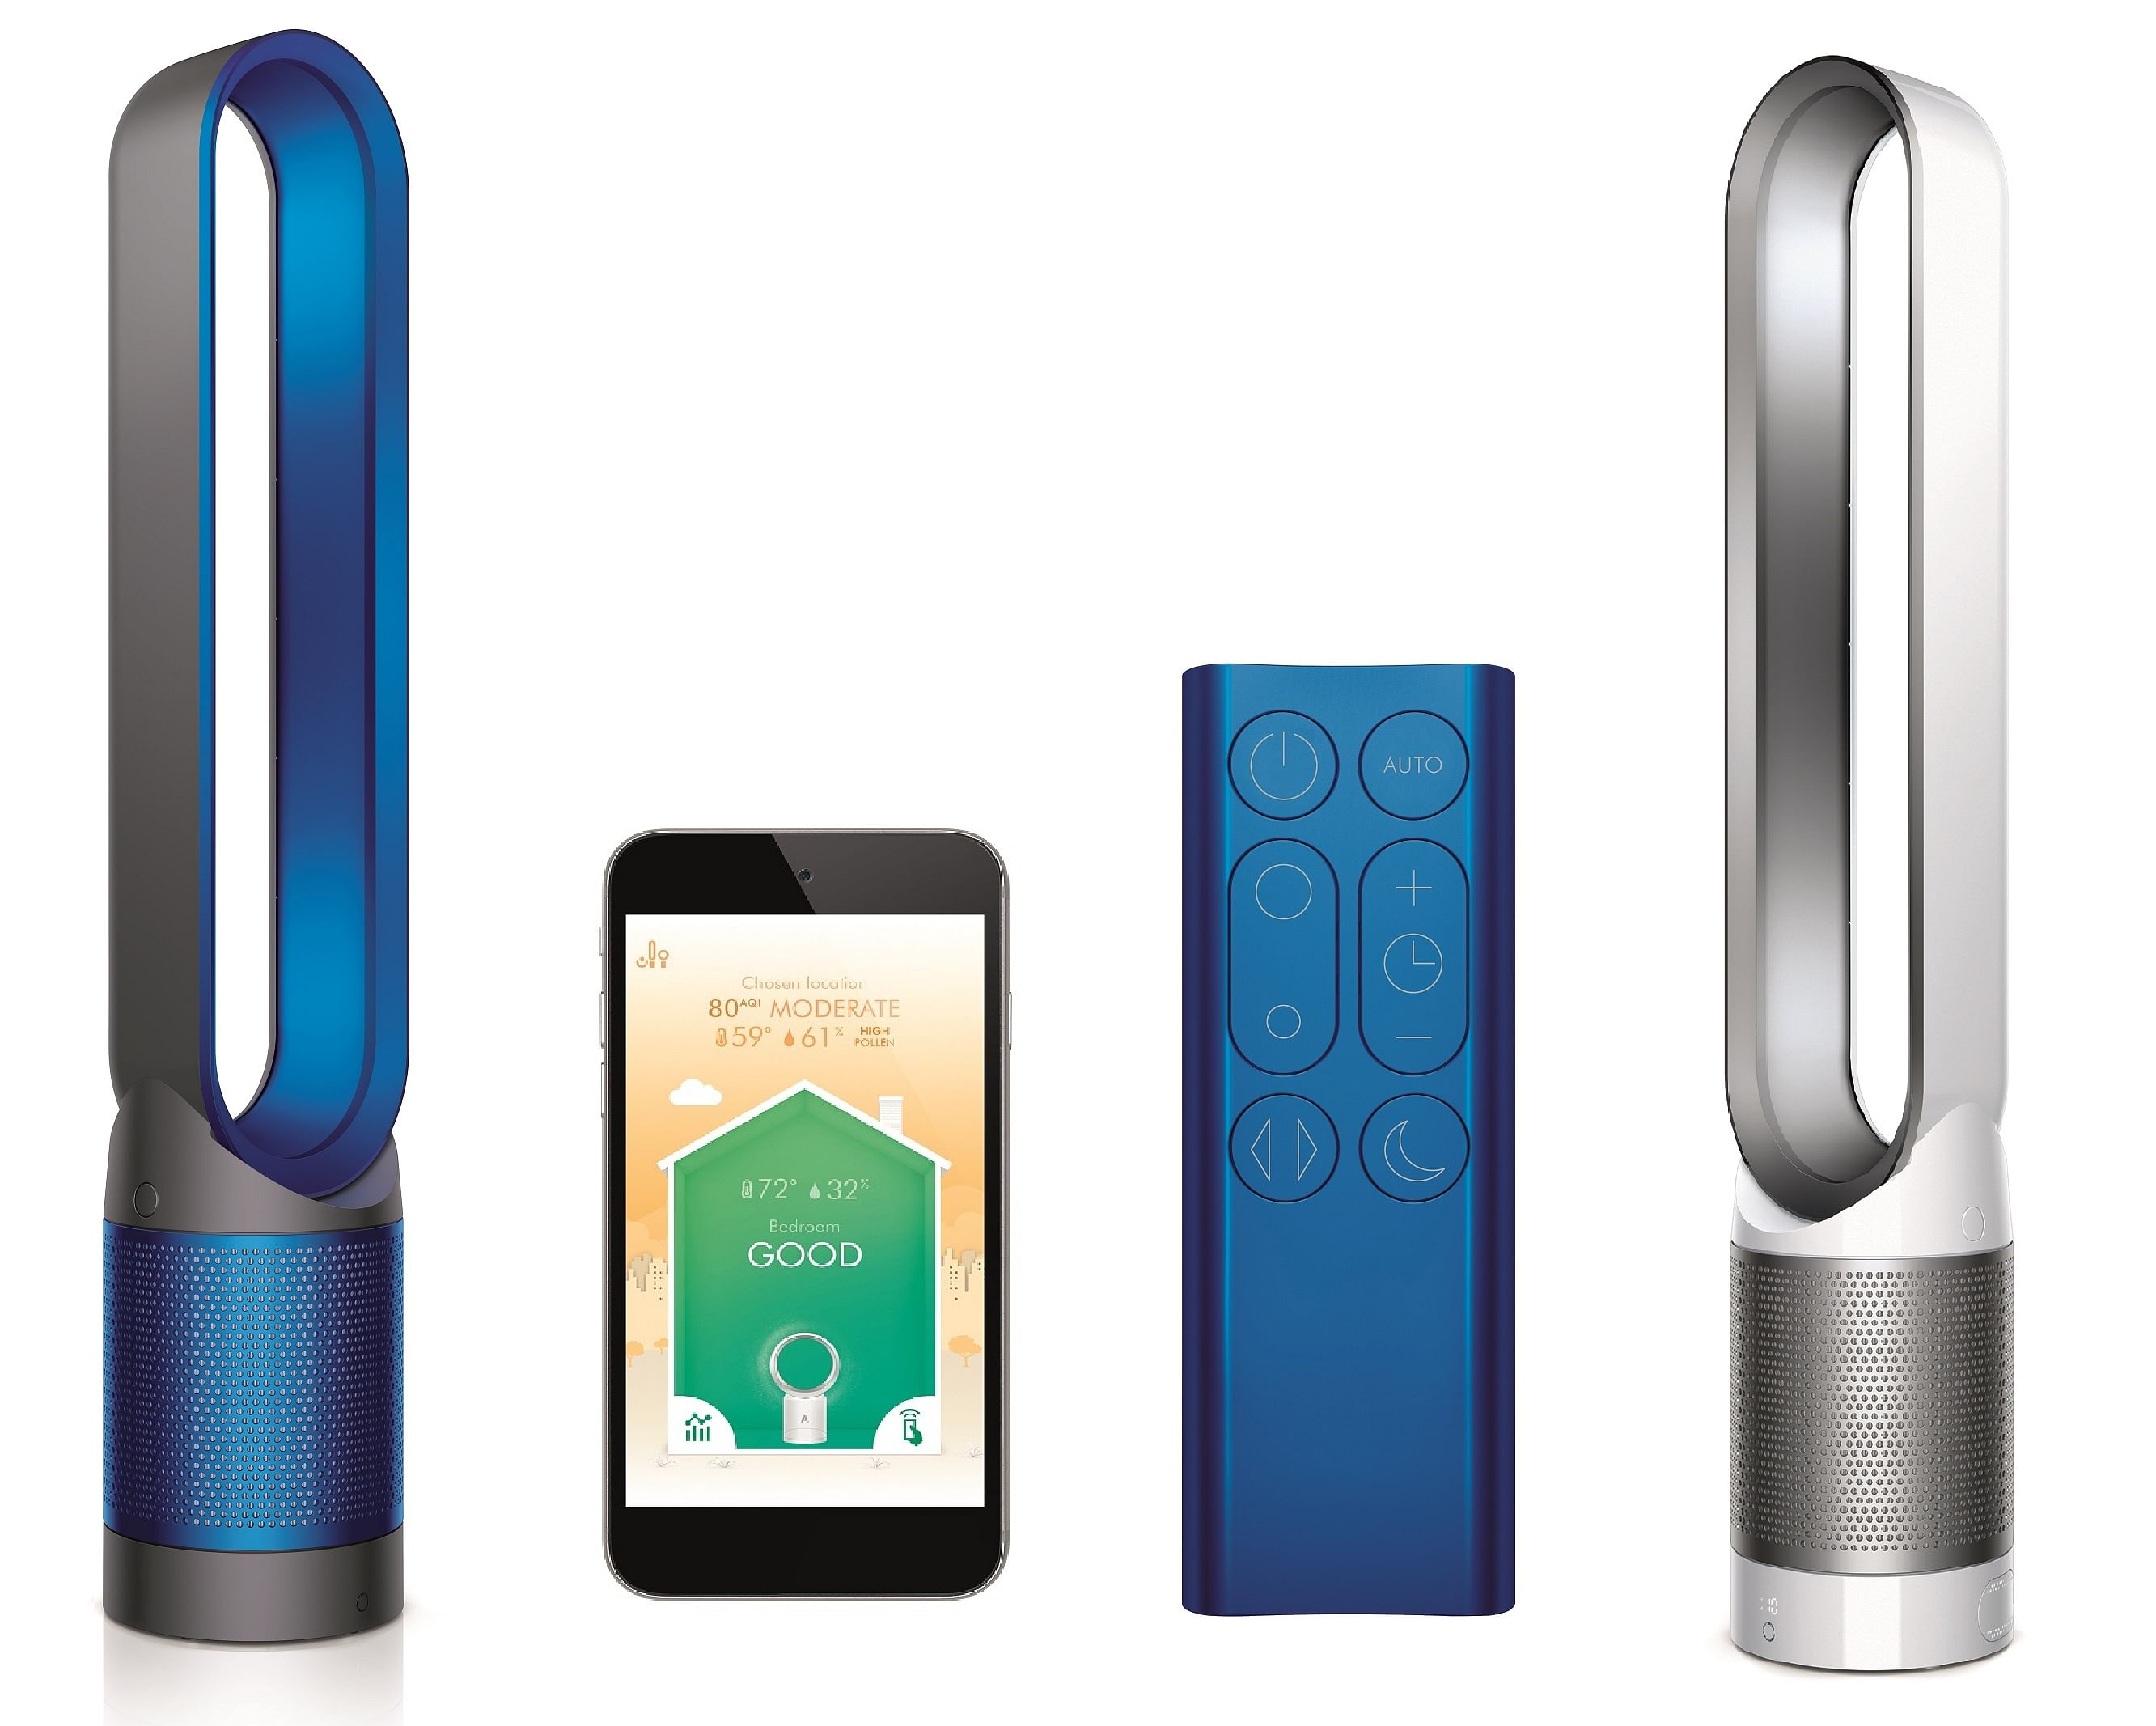 Smart Air Purifiers Dyson Pure Cool Link Vs Philips 3000